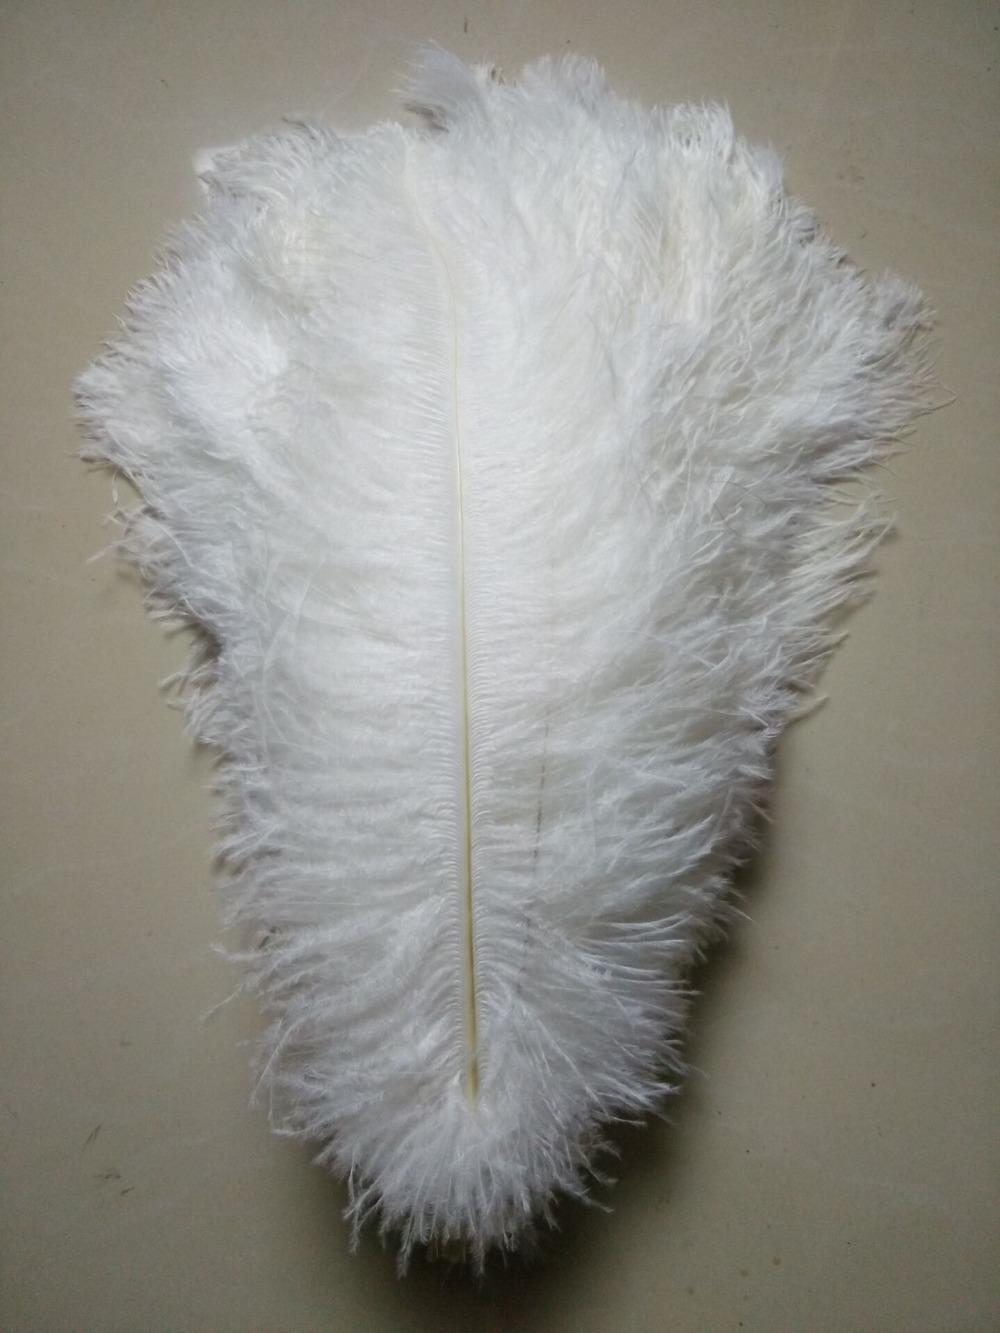 50 pc quality white ostrich feathers 16 18inches 40 45cm DIY wedding decorations